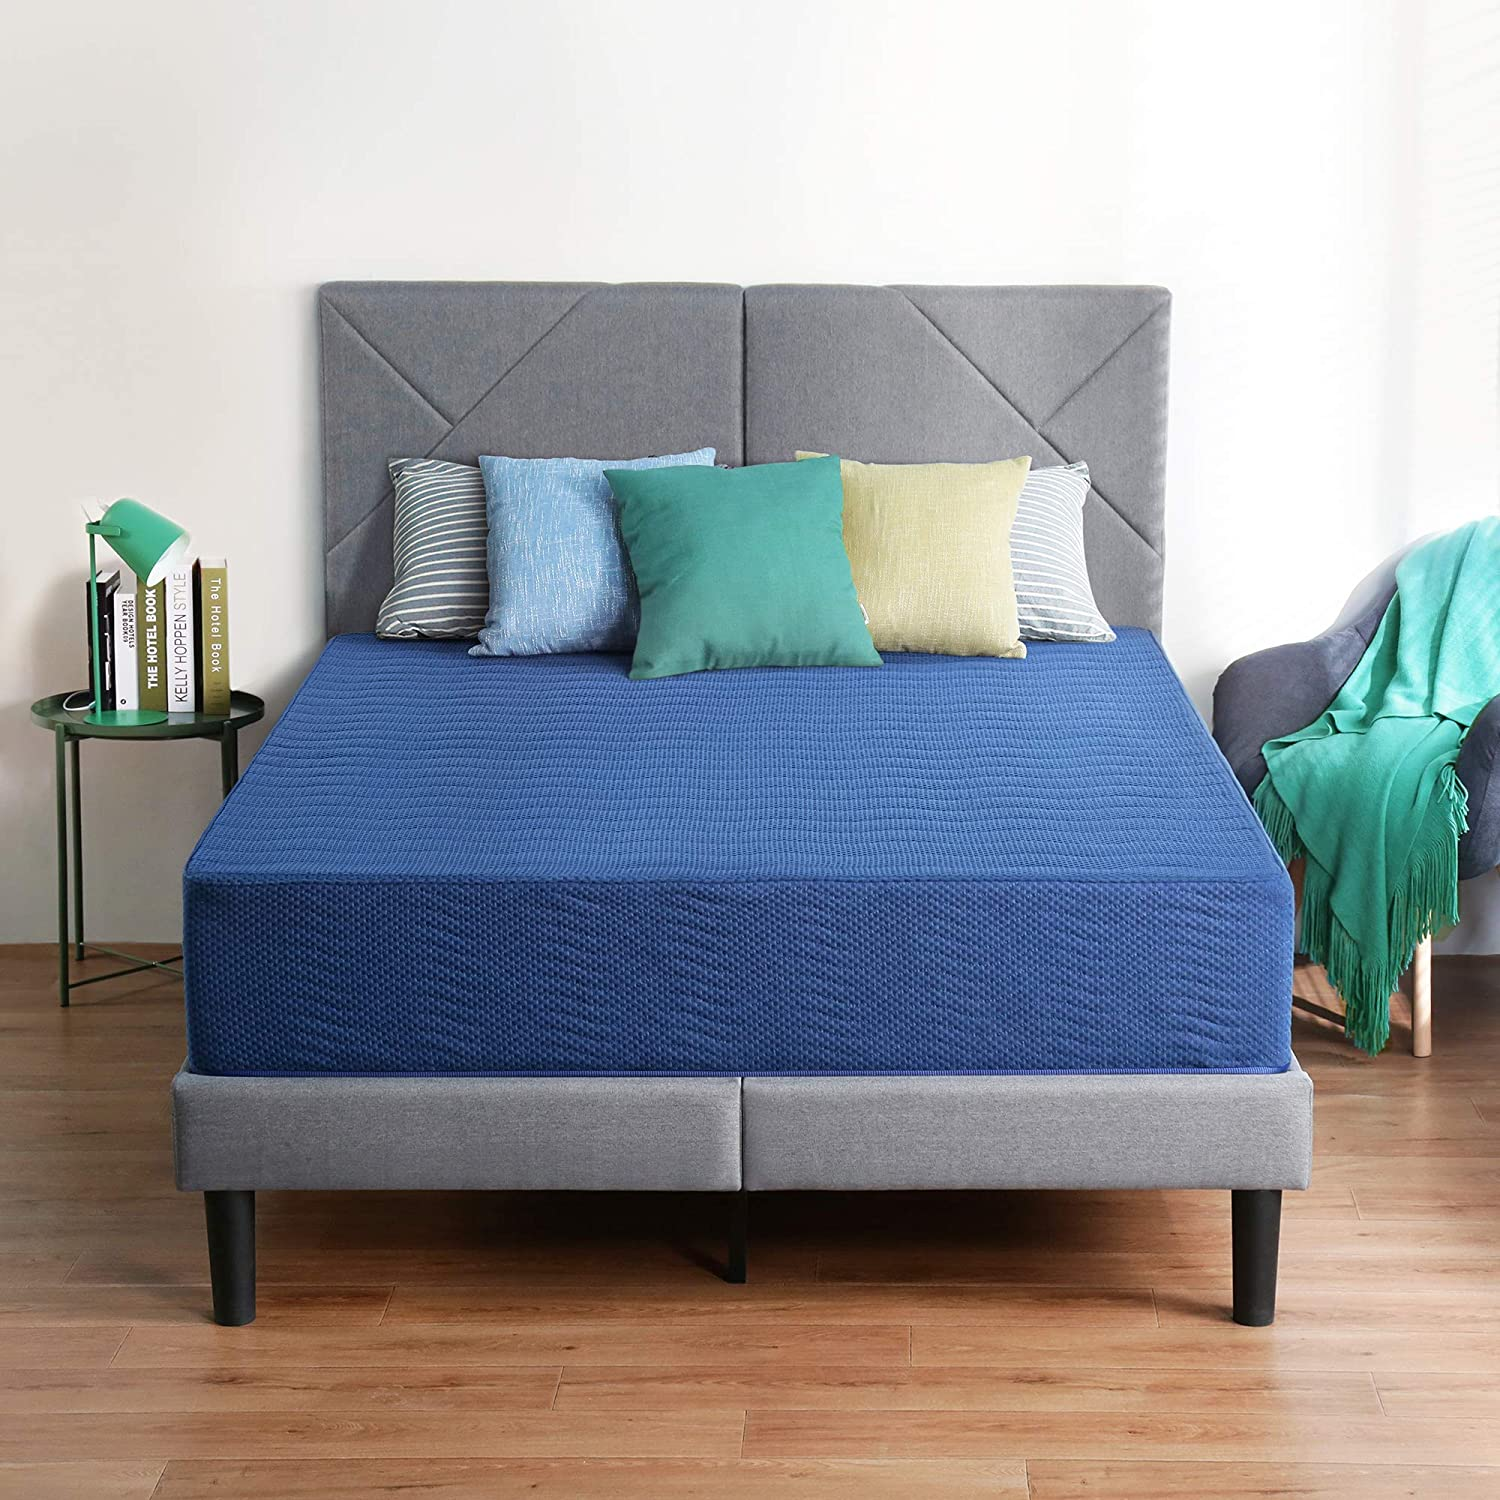 Olee Sleep 10 Inch New Safe Foam Max 72% sold out OFF Blue Comfort Mattress Memory